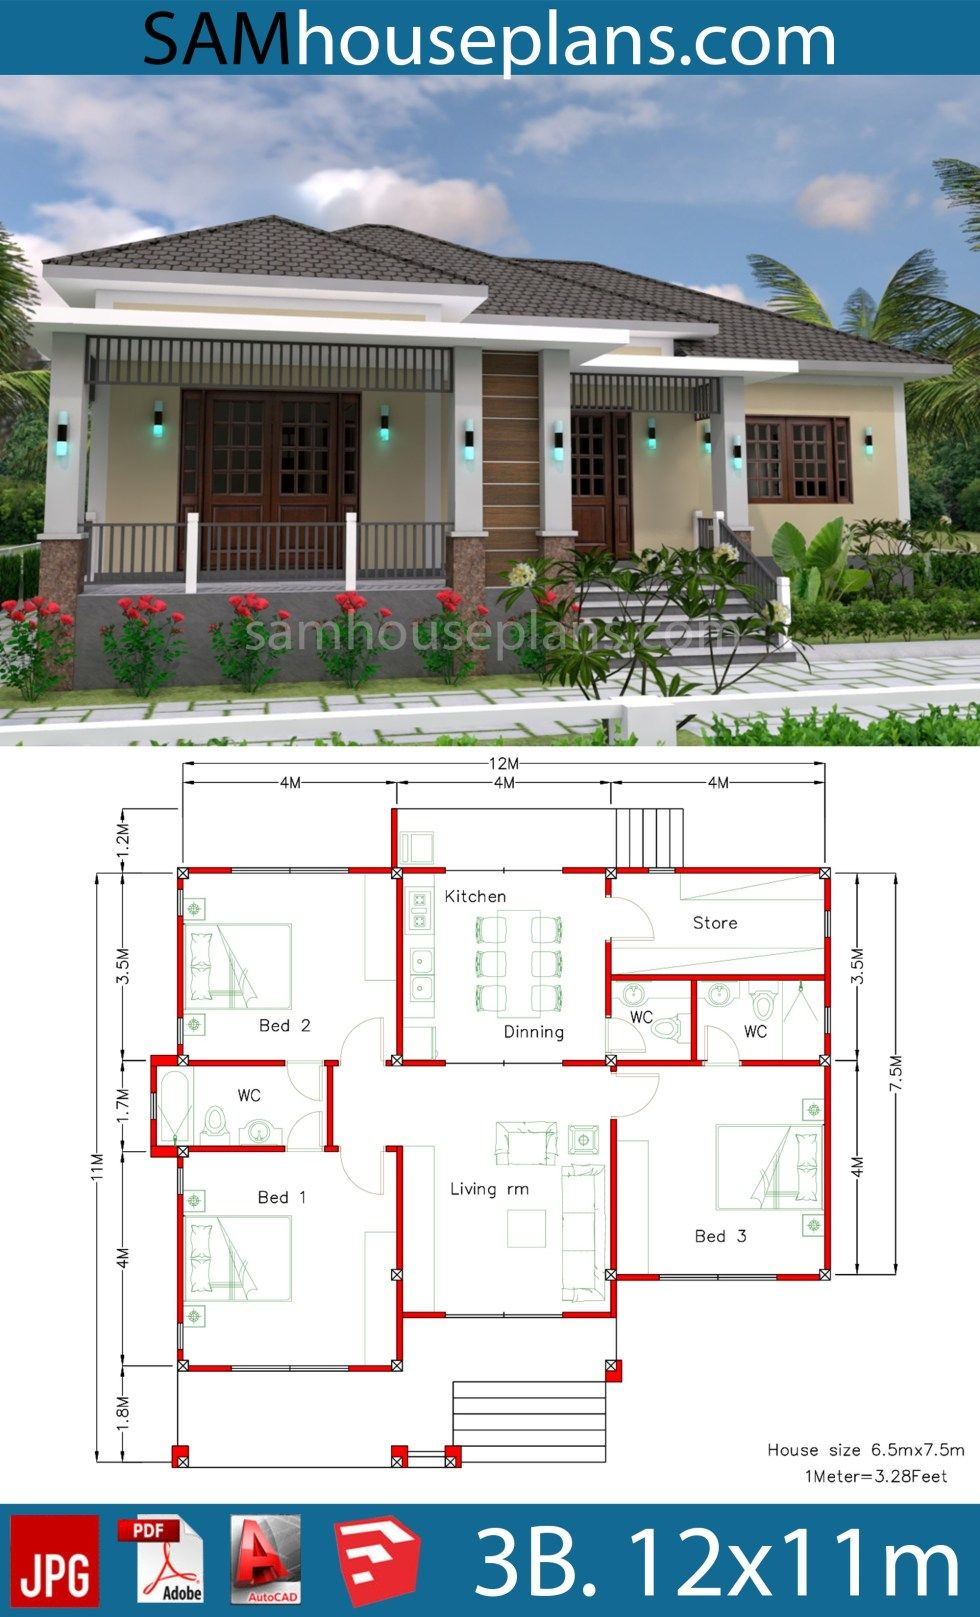 House Plans 12x11m With Full Plan 3beds Sam House Plans Simple House Design House Layout Plans House Plans